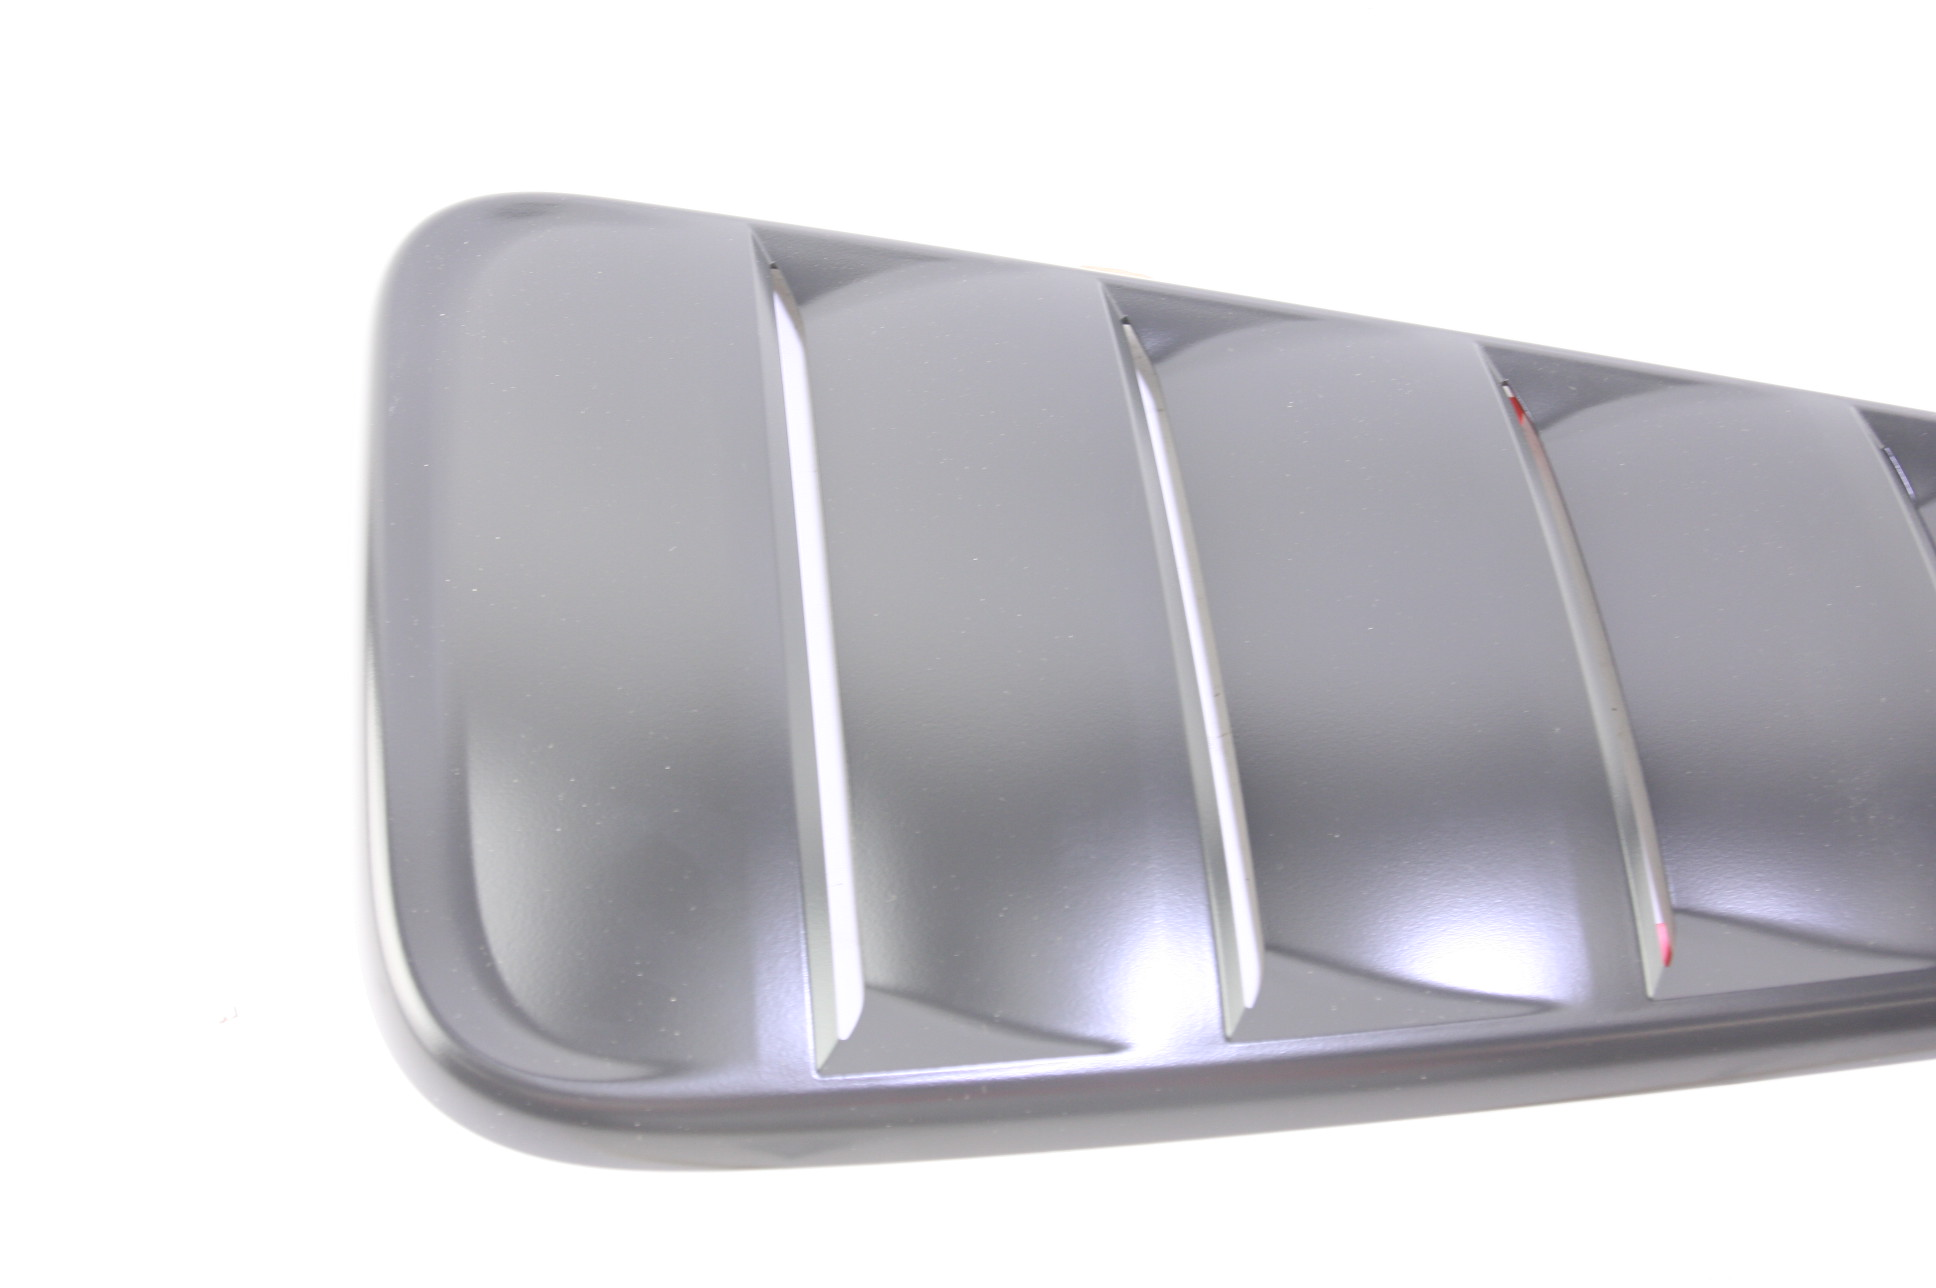 *** New OEM AR3Z63280B10AA 10-14 Mustang Louver Vent Right Primer Free Shipping - image 5